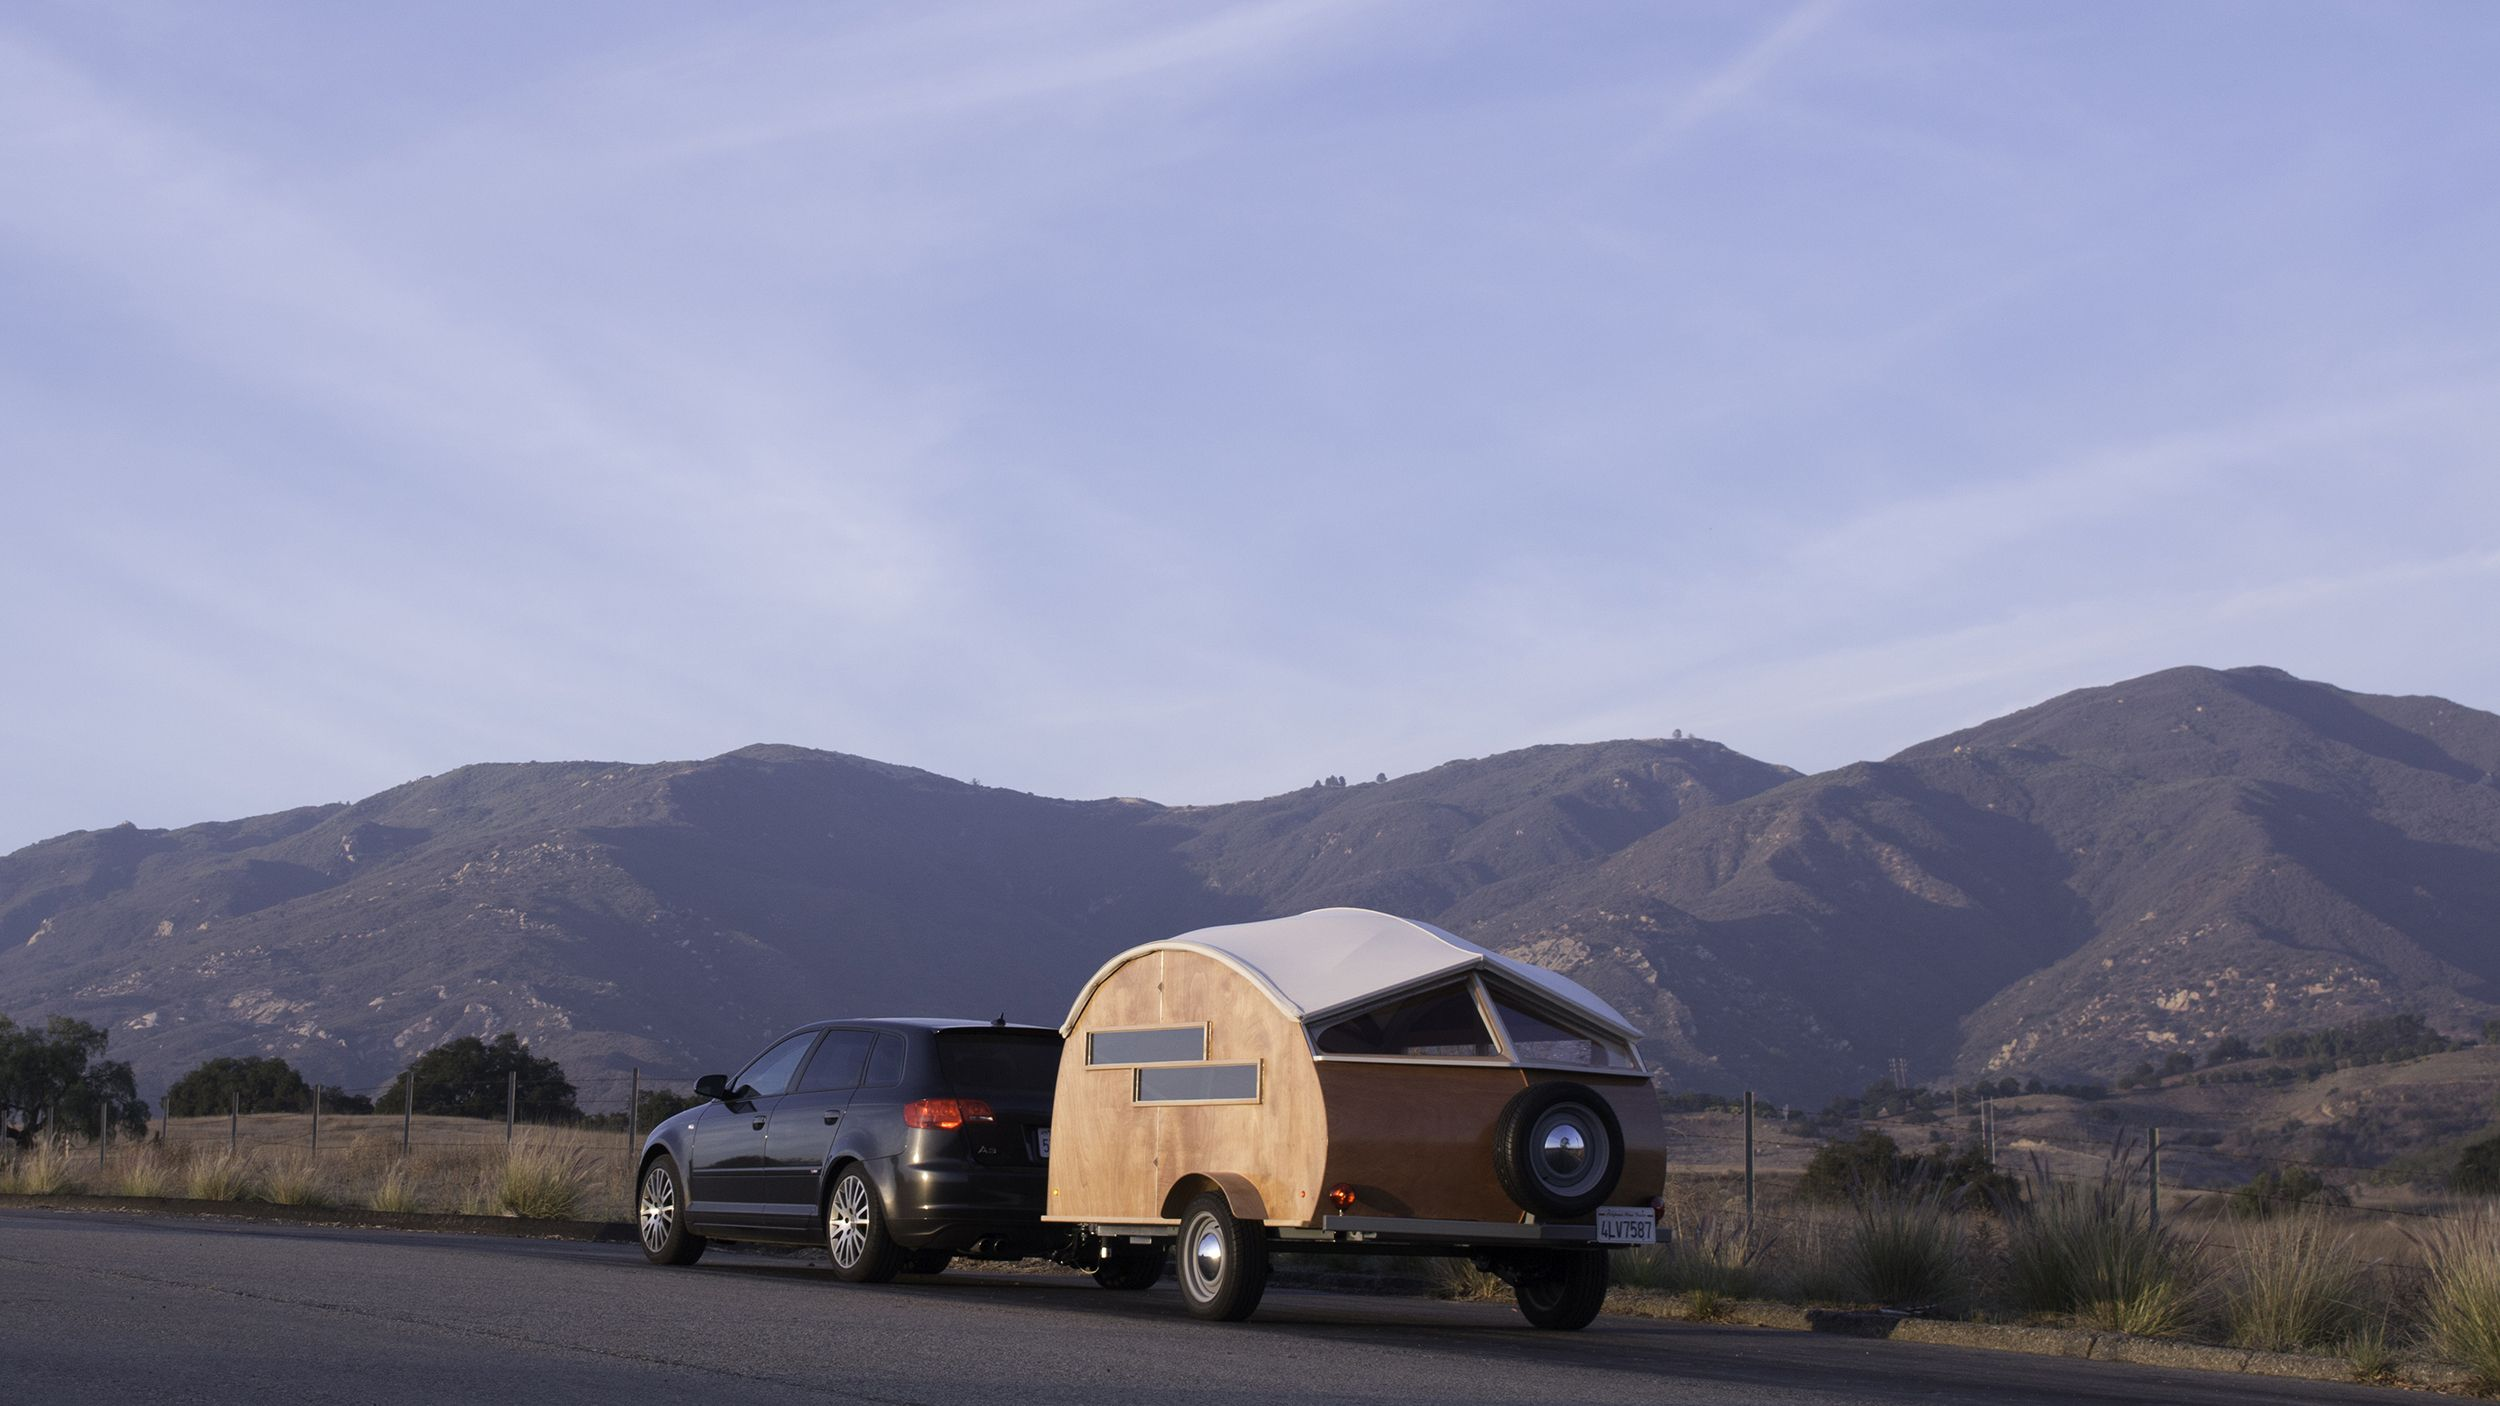 The 10 Best Teardrop Trailers for Safe Travels This Summer